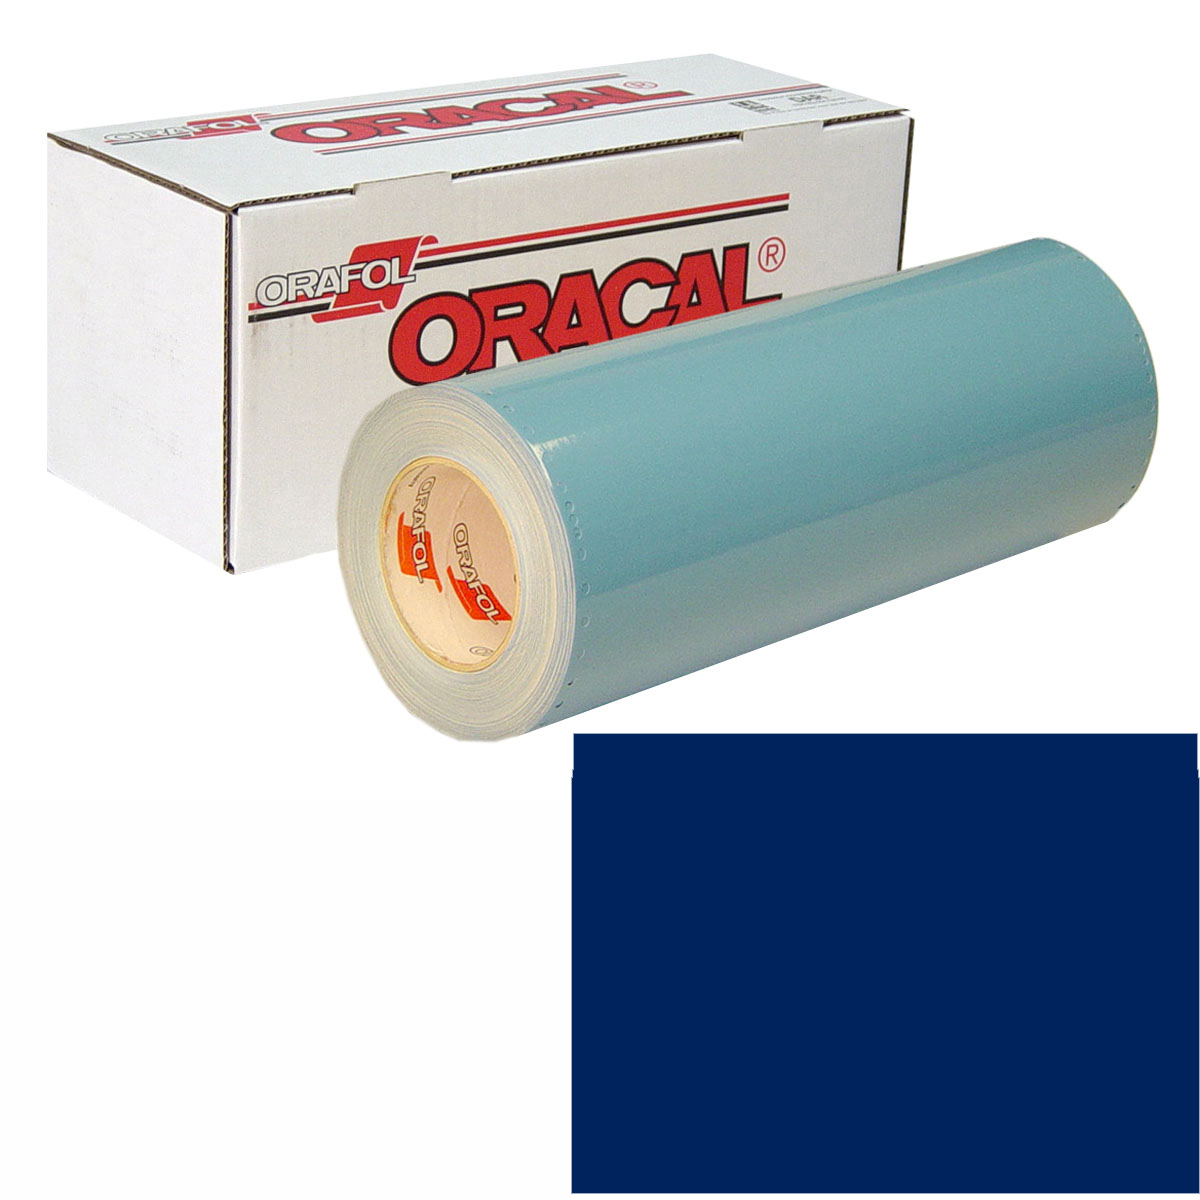 ORACAL 751 Unp 24in X 10yd 058 Ultramarine Bl